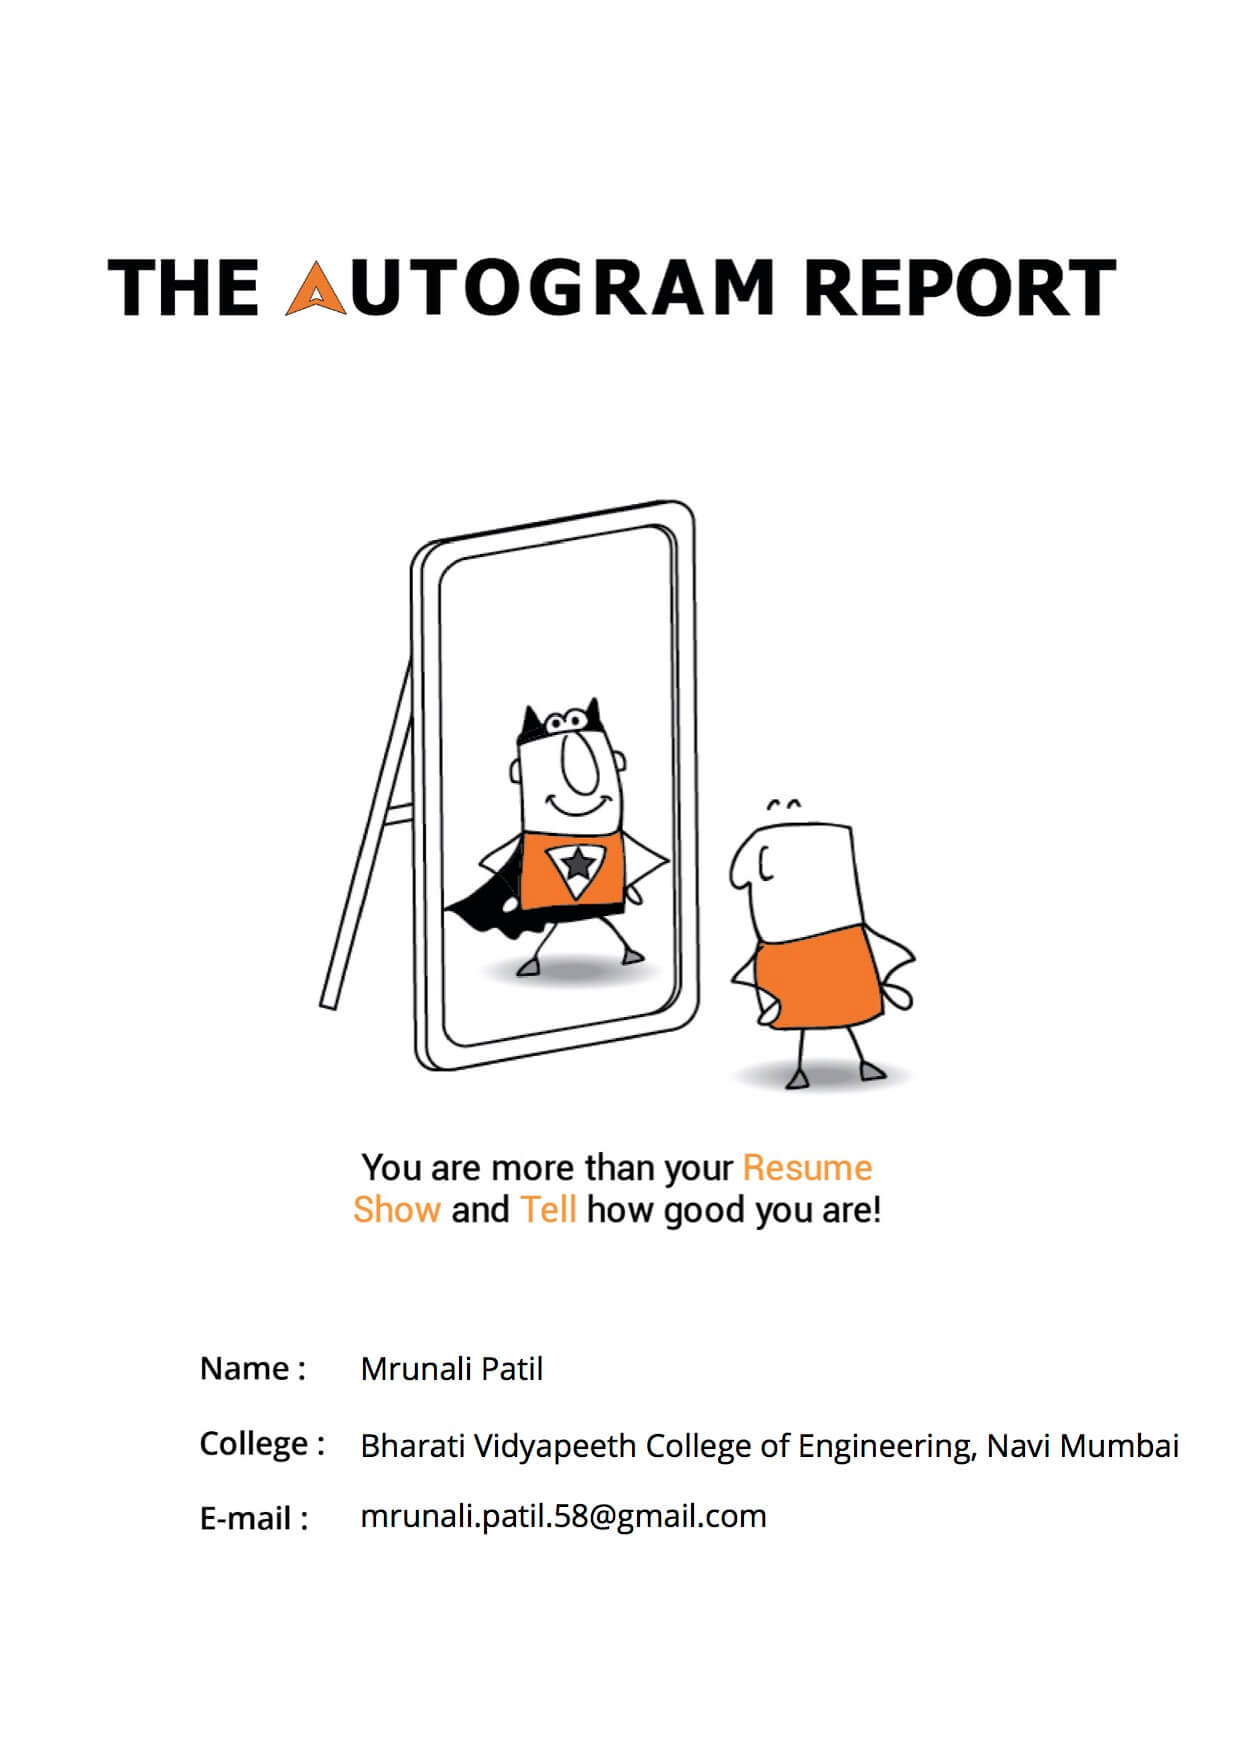 Autogram Mock Interview - Practice Interview Questions and get